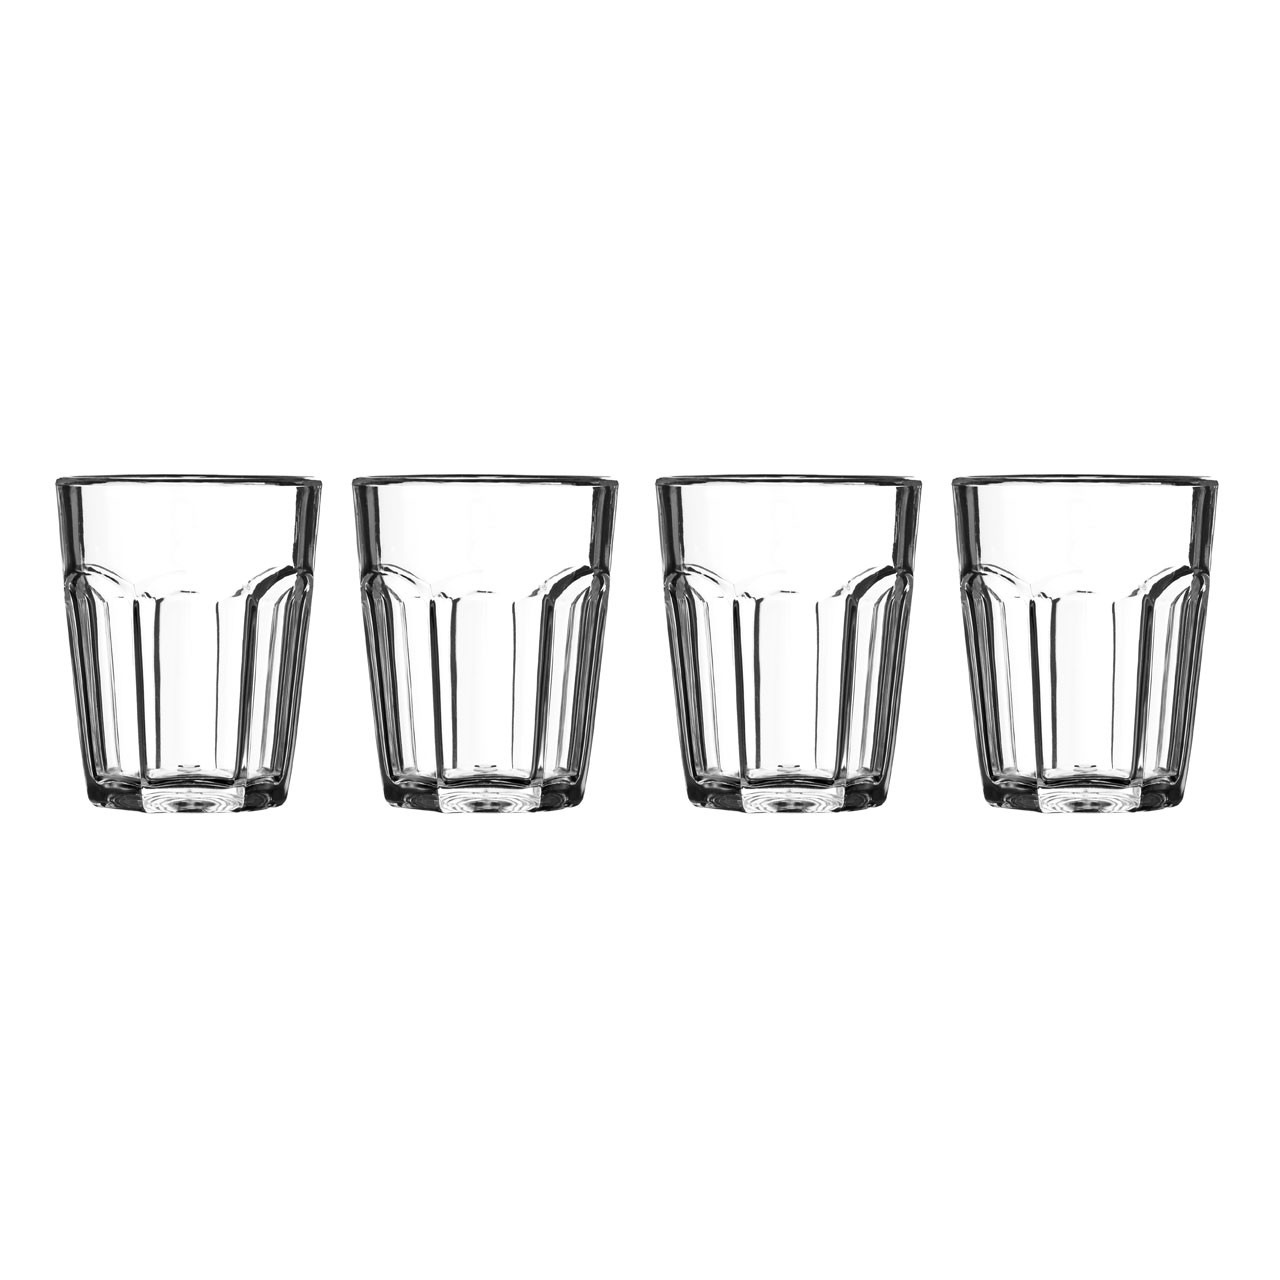 Plastic Shot Glasses - Clear, Set of 4